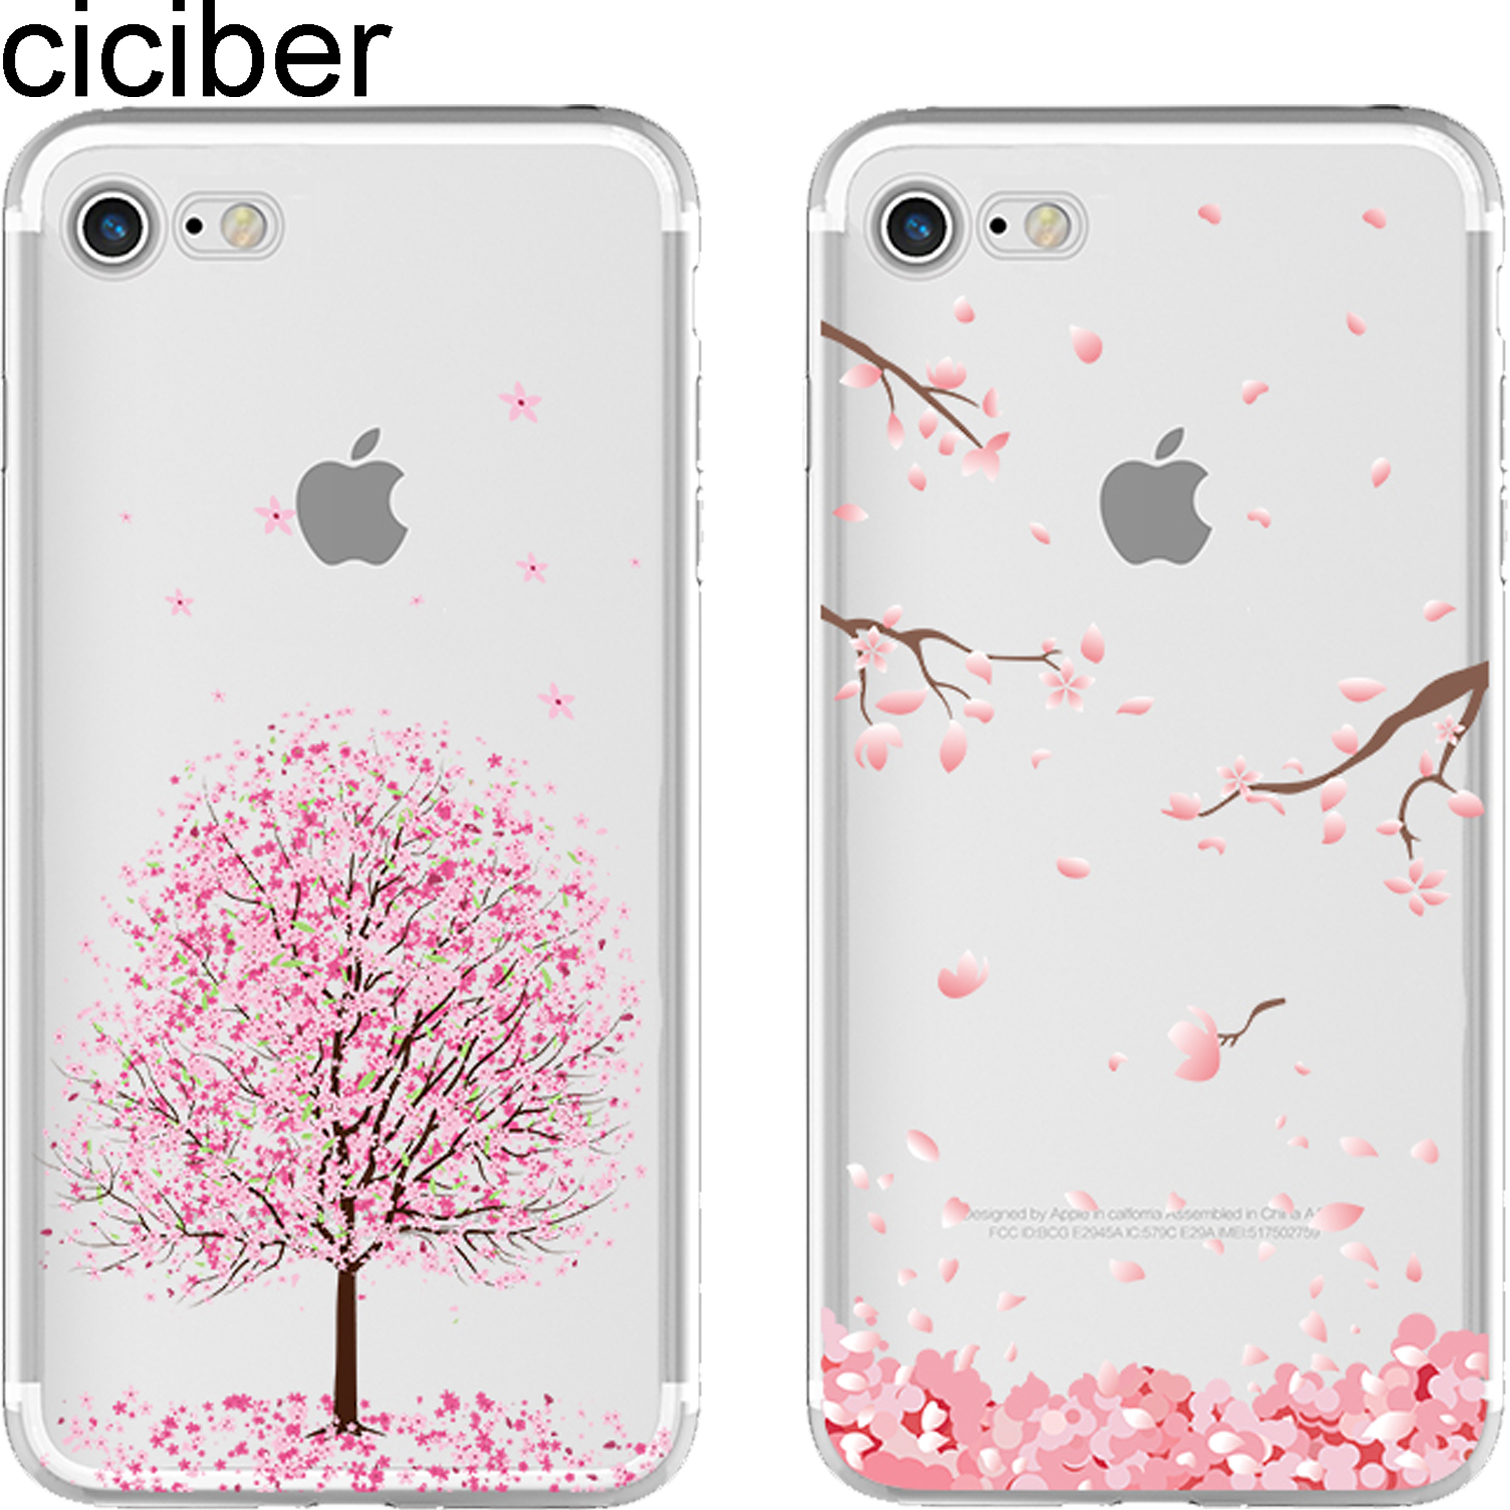 ciciber Romantic Sweet Cherry Blossom Cat Soft TPU Pouzdra na telefon Kryty pro iPhone 11 Pro Max 6 6S 7 8 Plus 5S SE X XR XS Max Funda